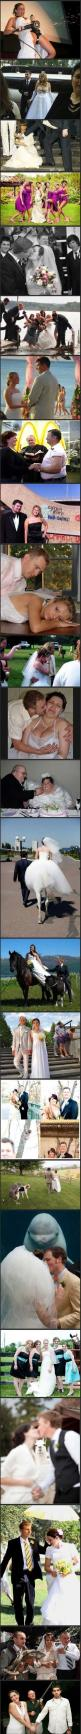 Mostly unfortunate wedding photos.. So so bad and yet so funny! CAN'T STOP LAUGHING: Awkward Wedding, Giggle, Wedding Photos, Funny Wedding, So Funny, Wedding Pictures